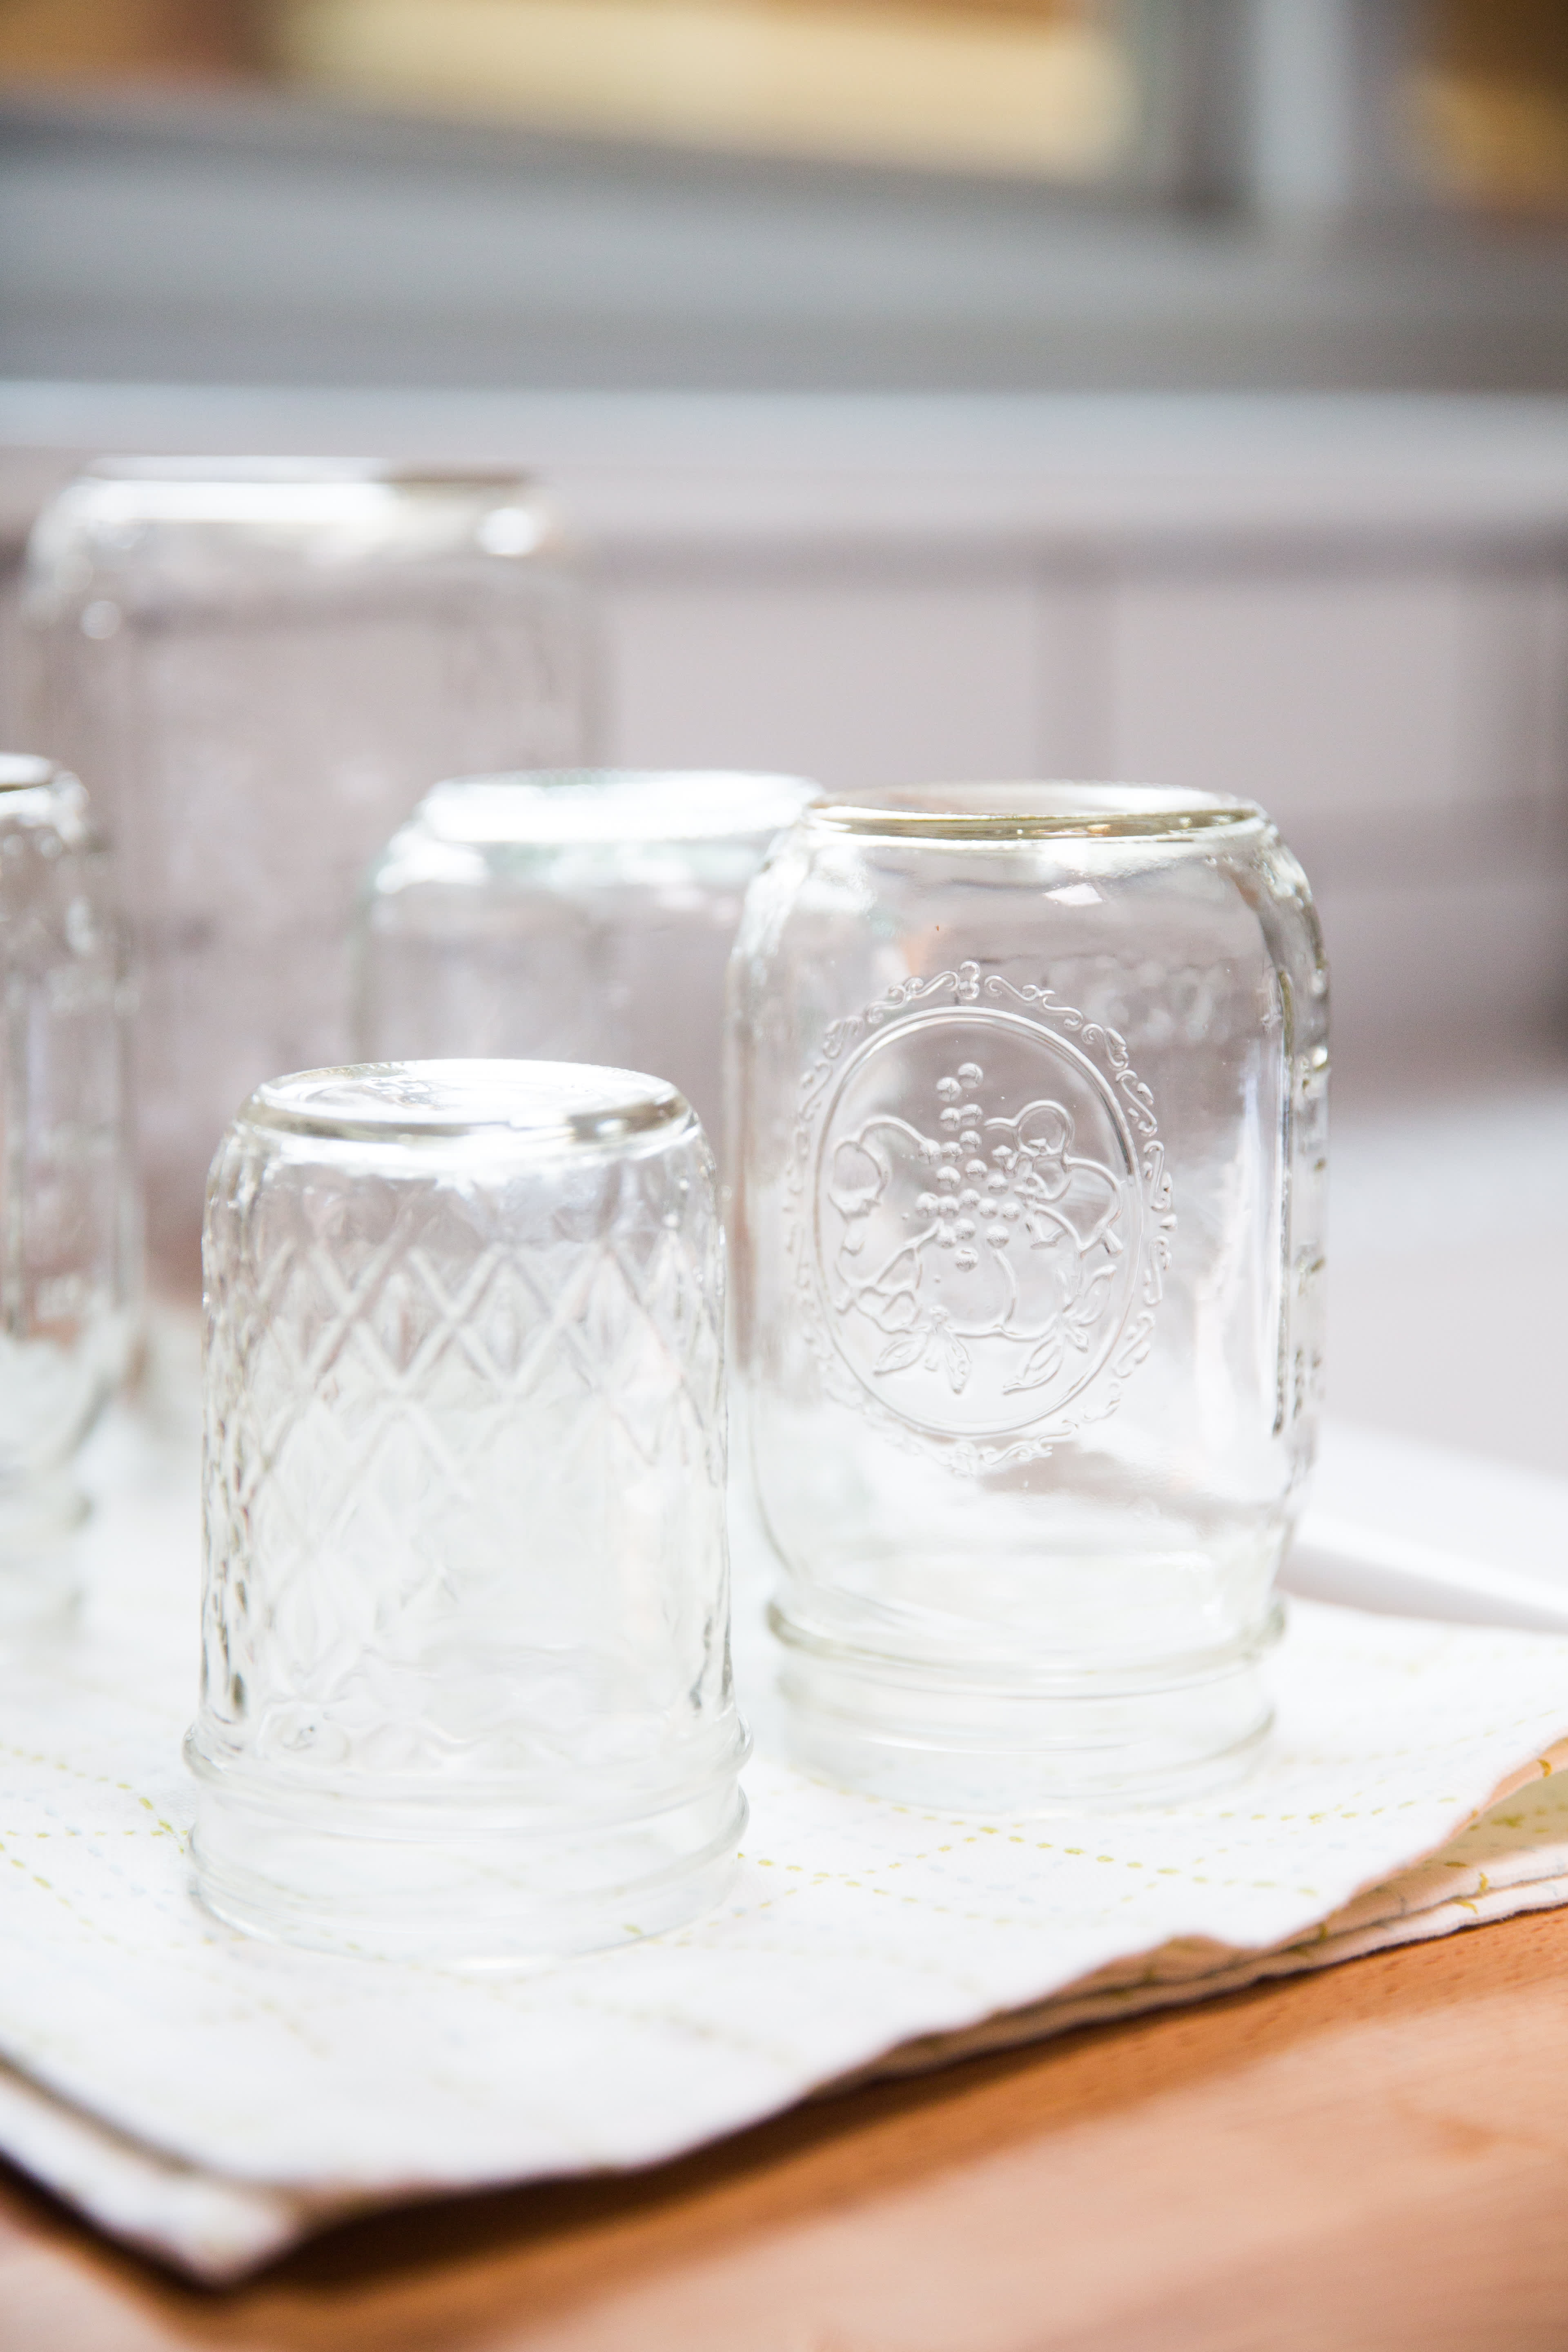 How To Quick Pickle Any Vegetable: gallery image 1